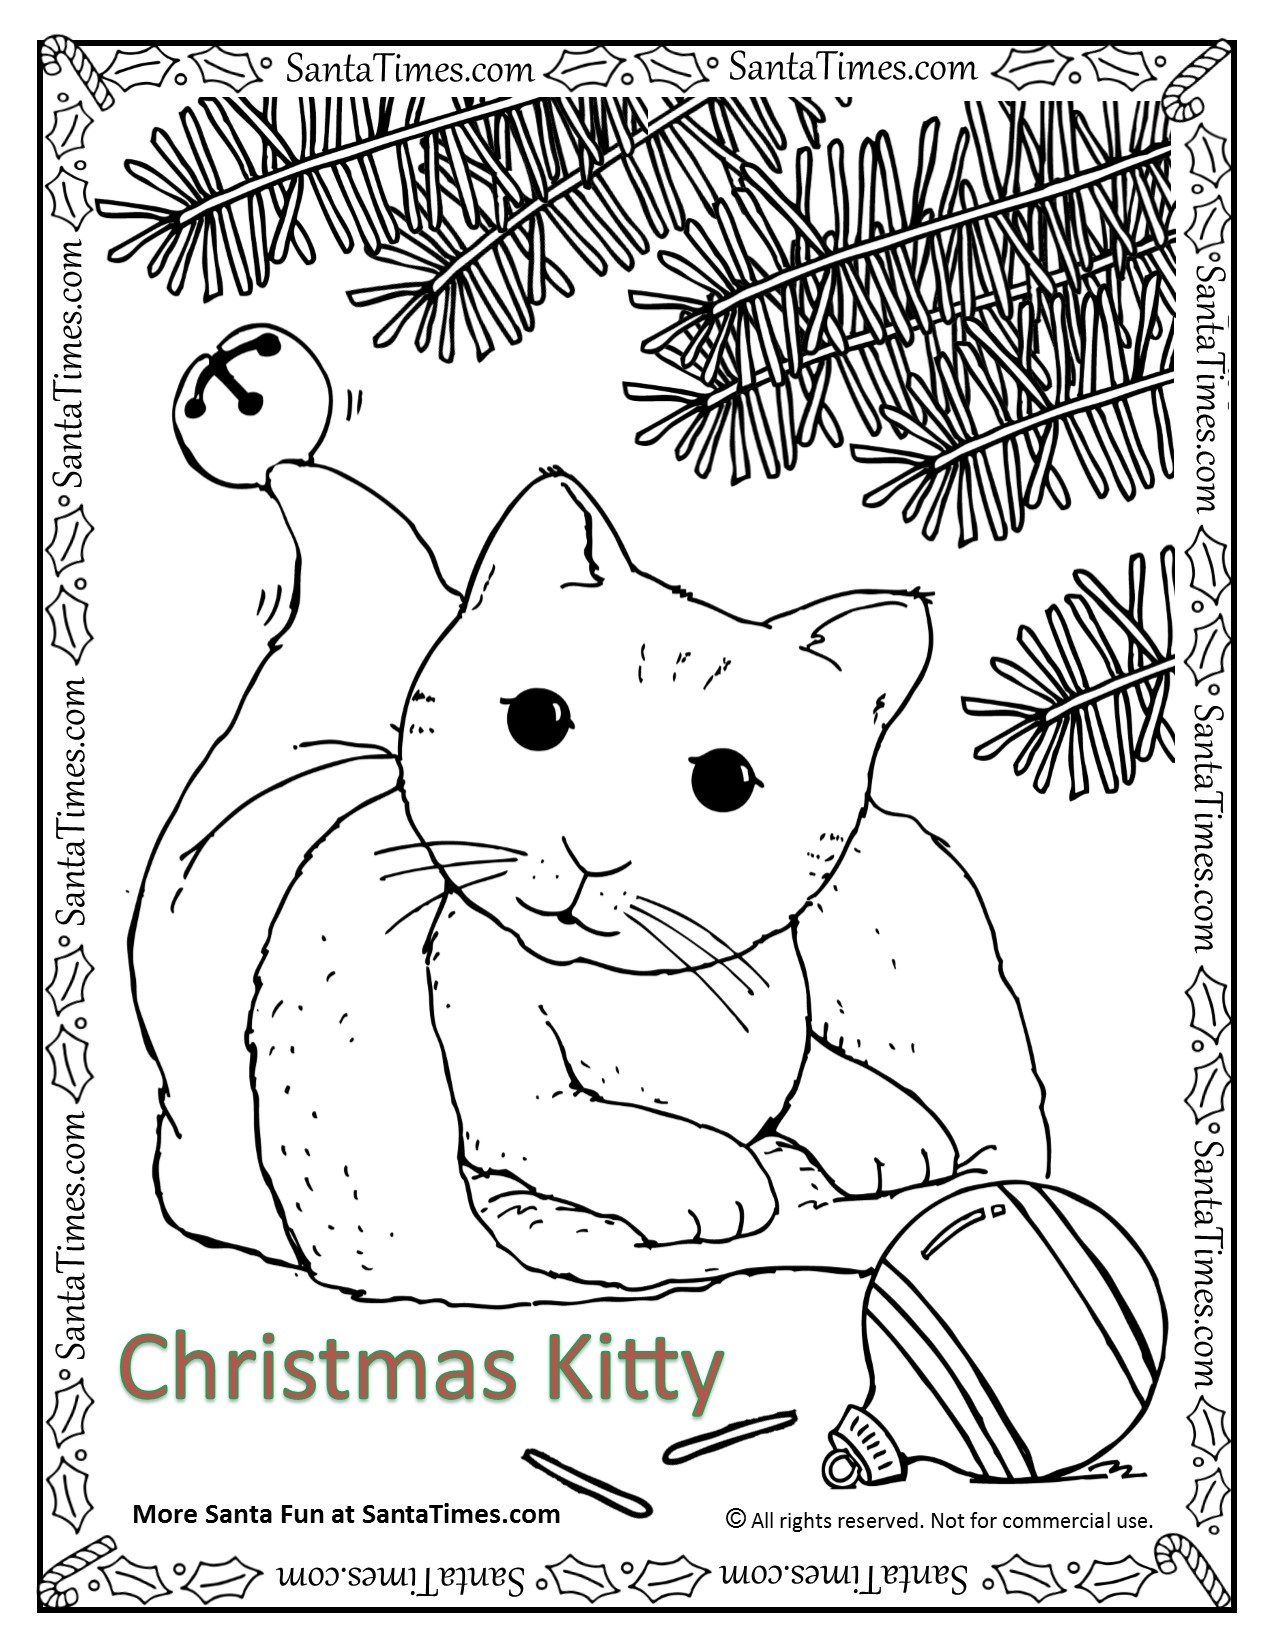 Christmas kitty coloring page for Christmas kitten coloring pages